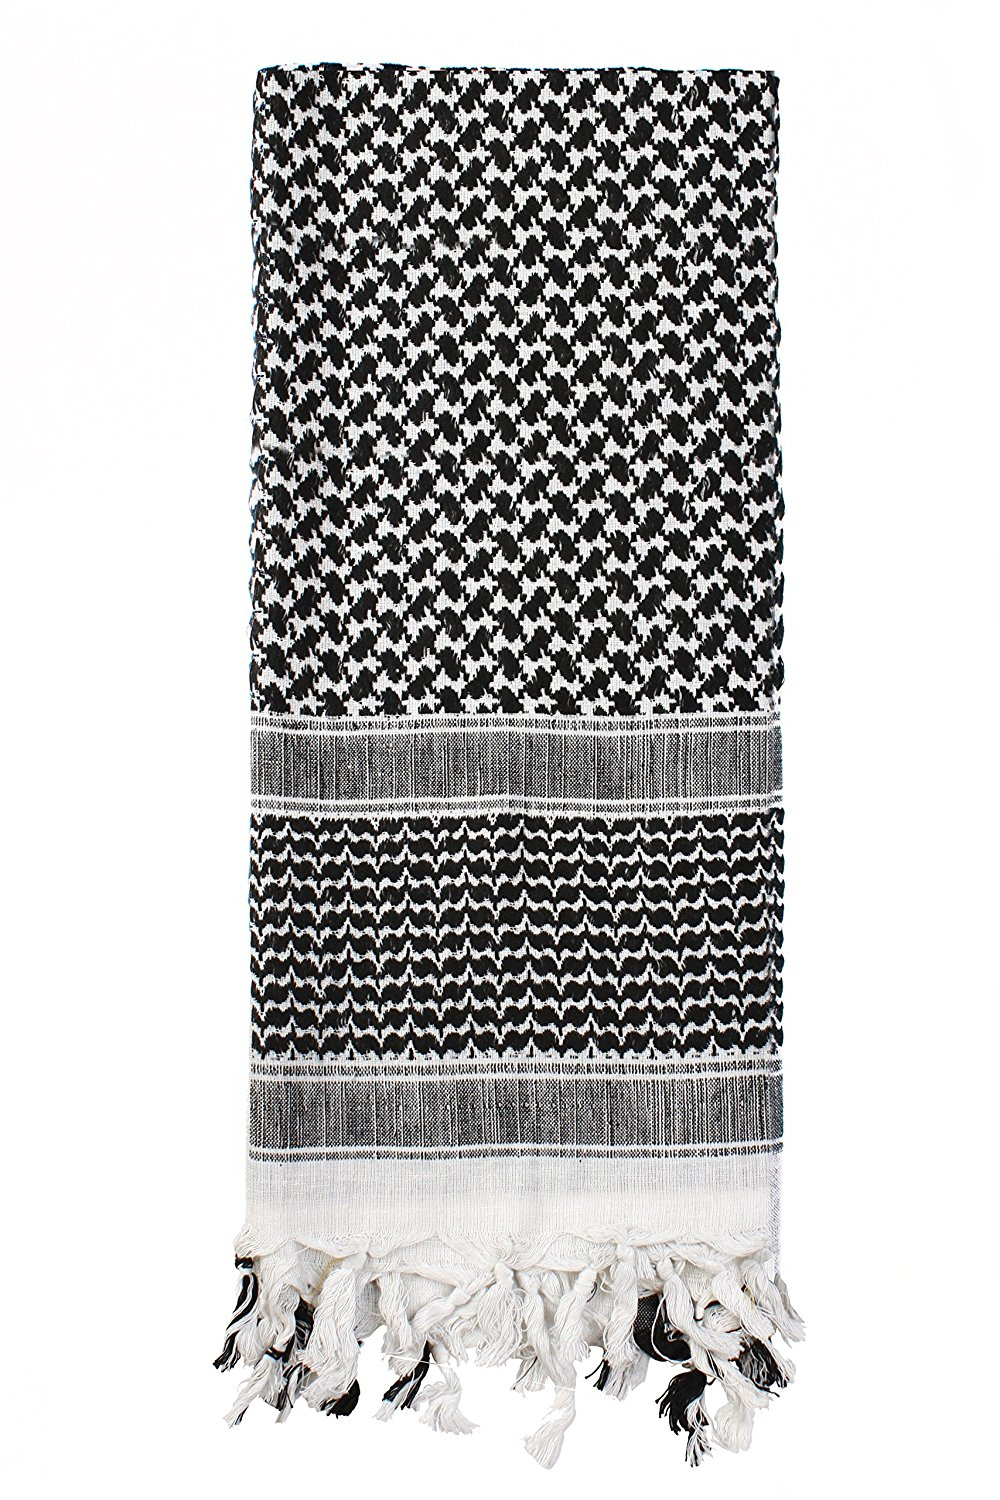 Rothco Lightweight Shemagh Tactical Desert Scarves - Black / White